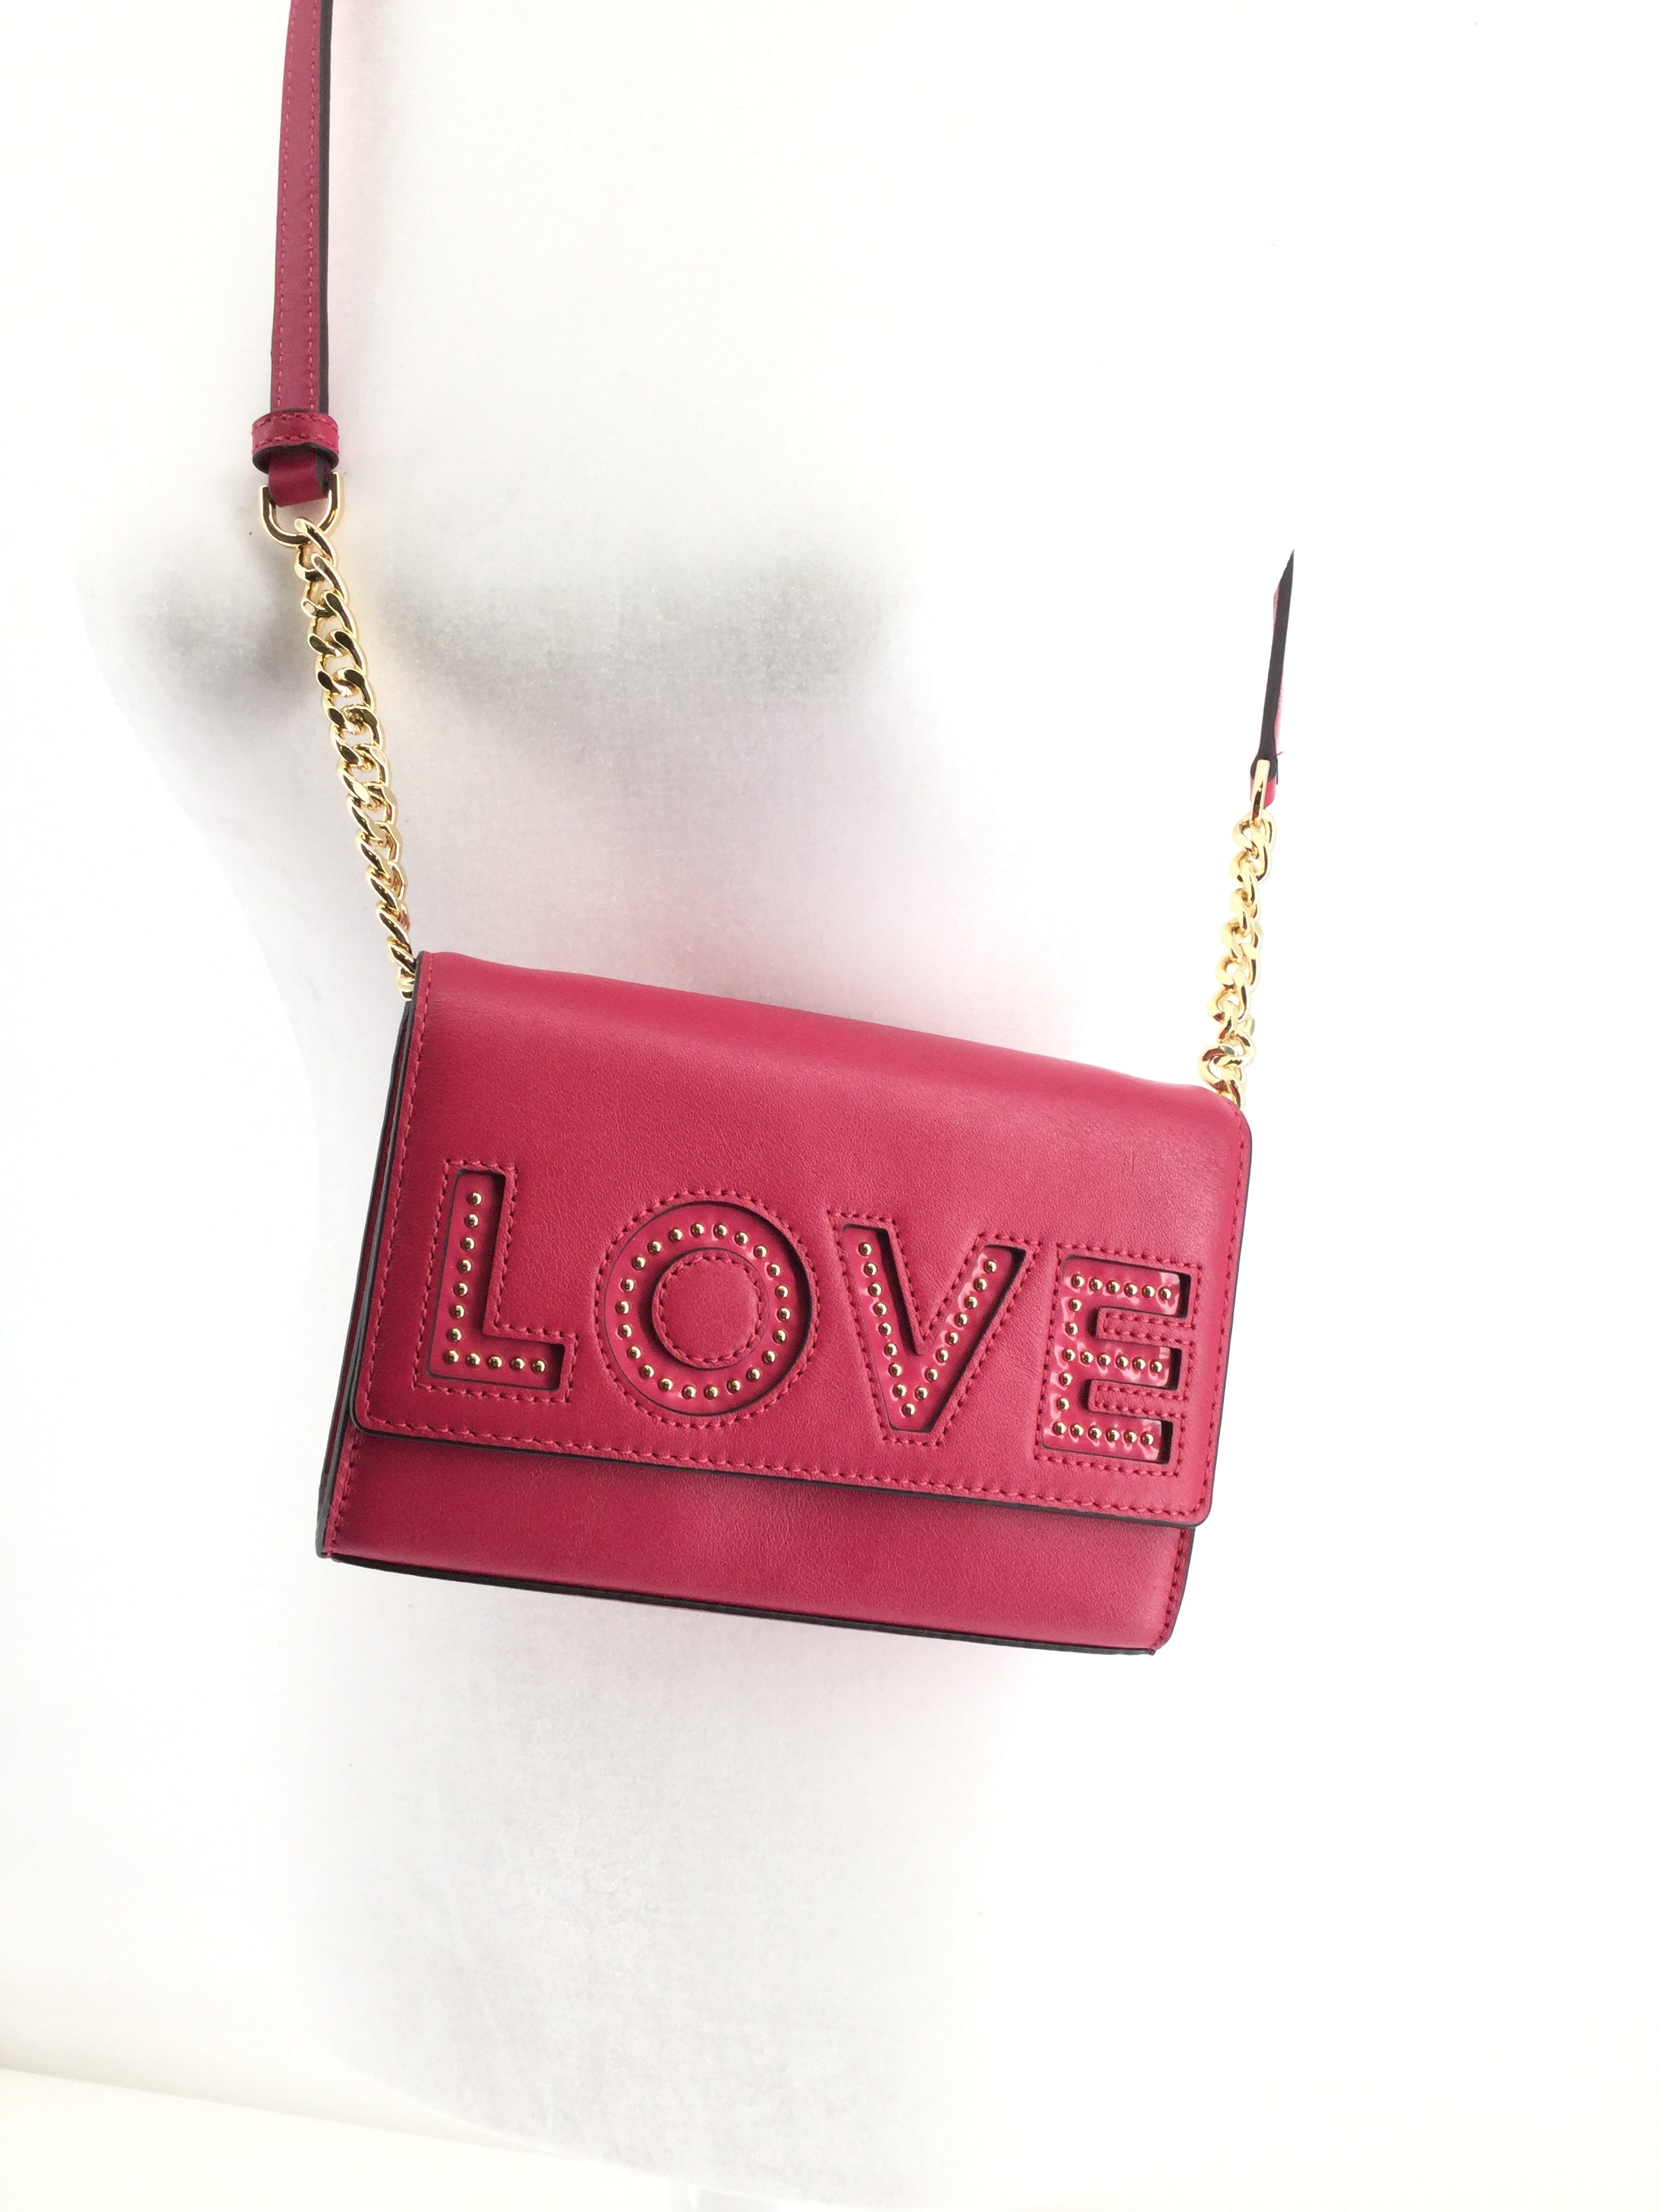 ACCESSORIES,PURSES AND HANDBAGS - PINK LEATHER CROSS-BODY WITH